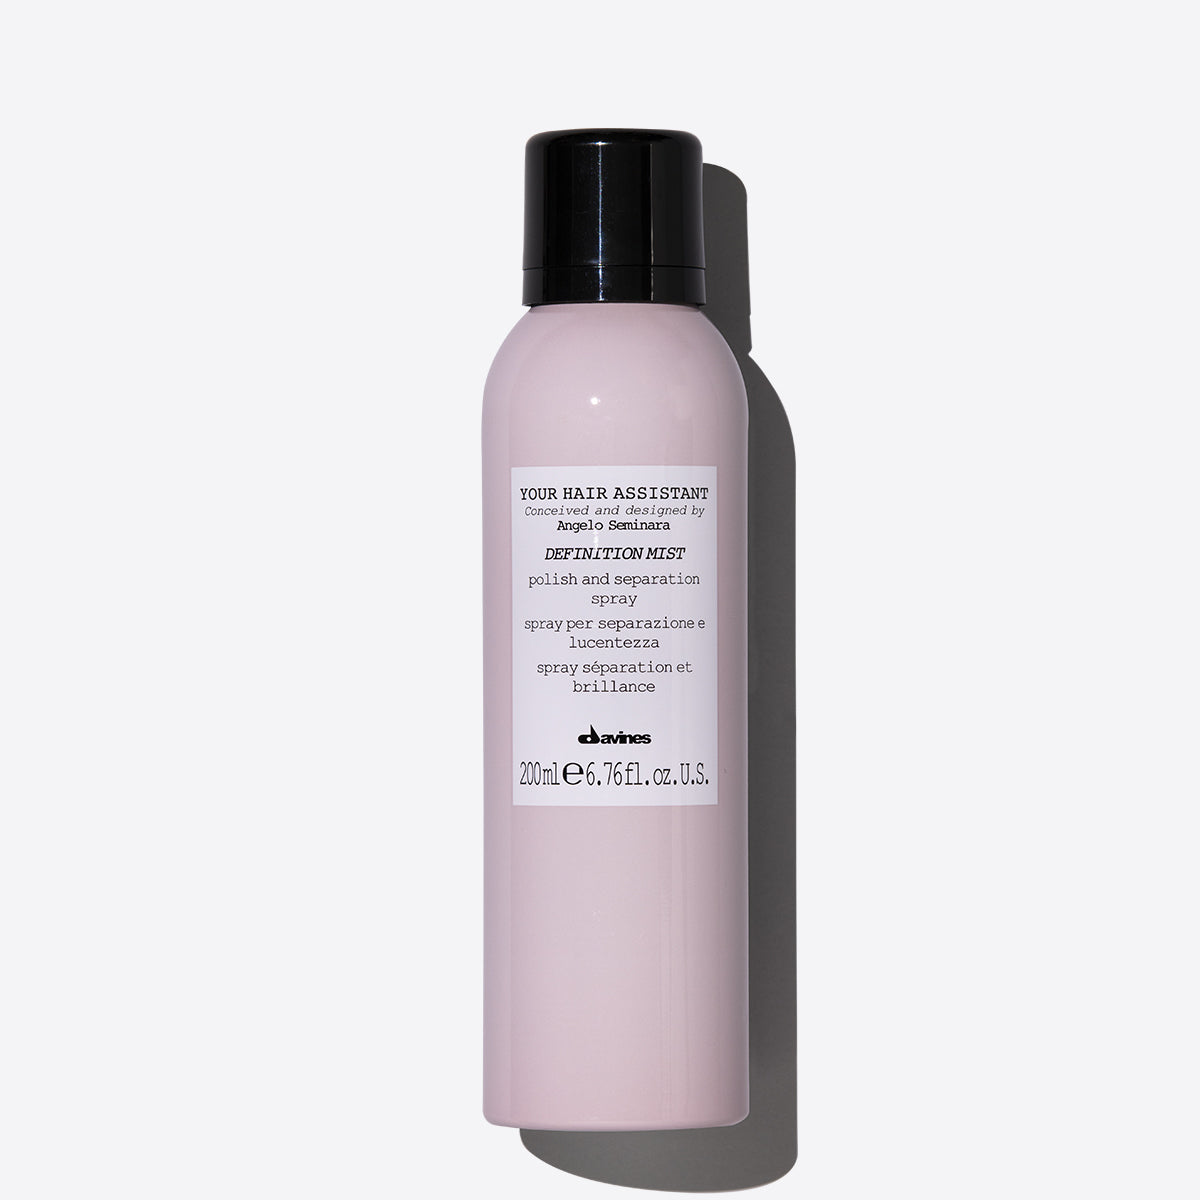 Definition Mist 1  200 ml / 6,76 fl.oz.Davines